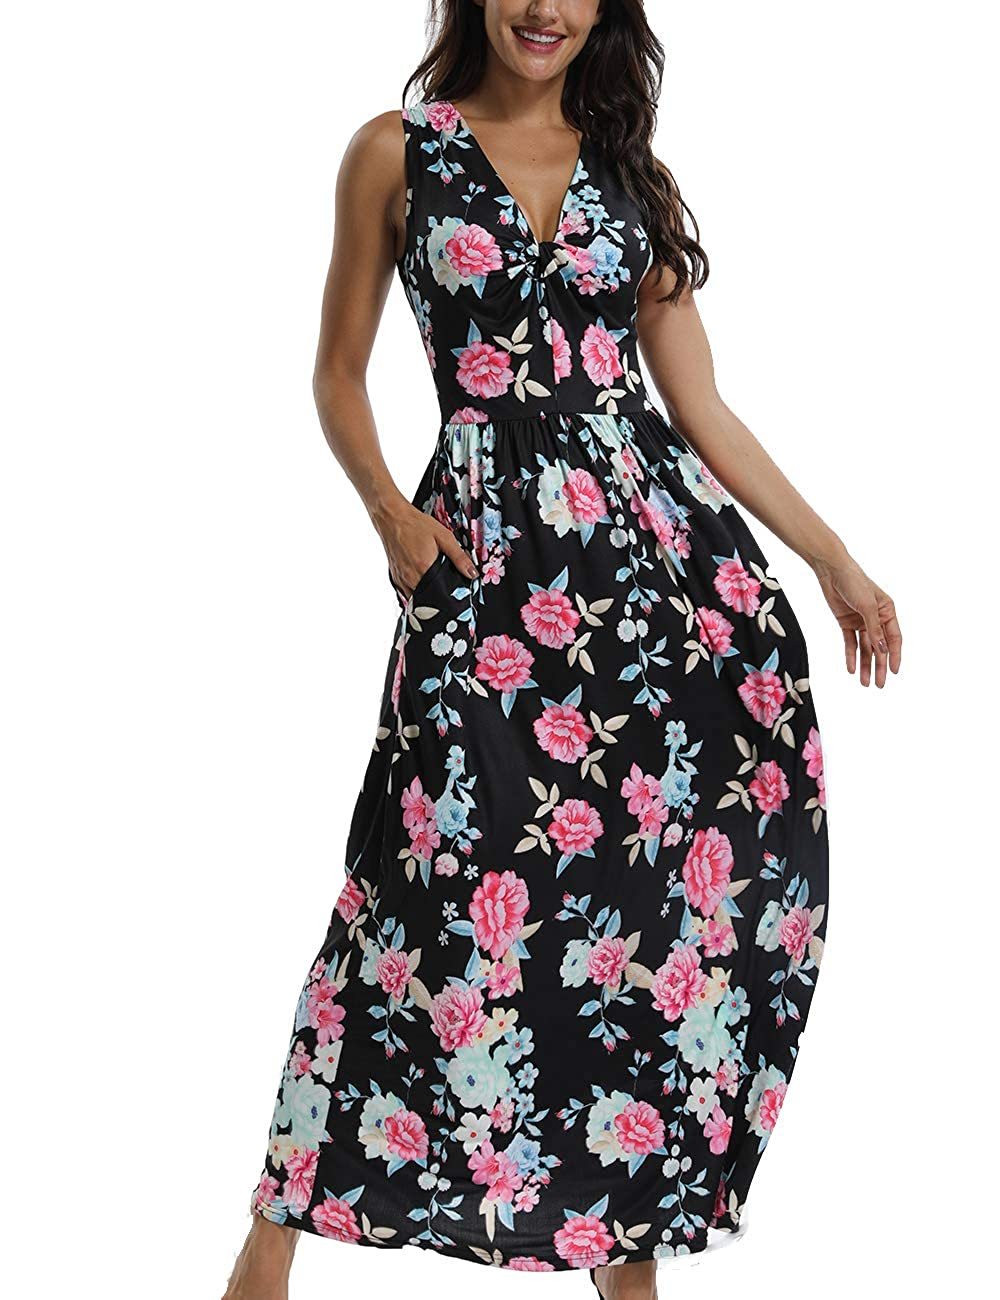 Black UAress Women's Floral Maxi Dresses Sleeveless V Neck Beach Casual Dress with Pockets